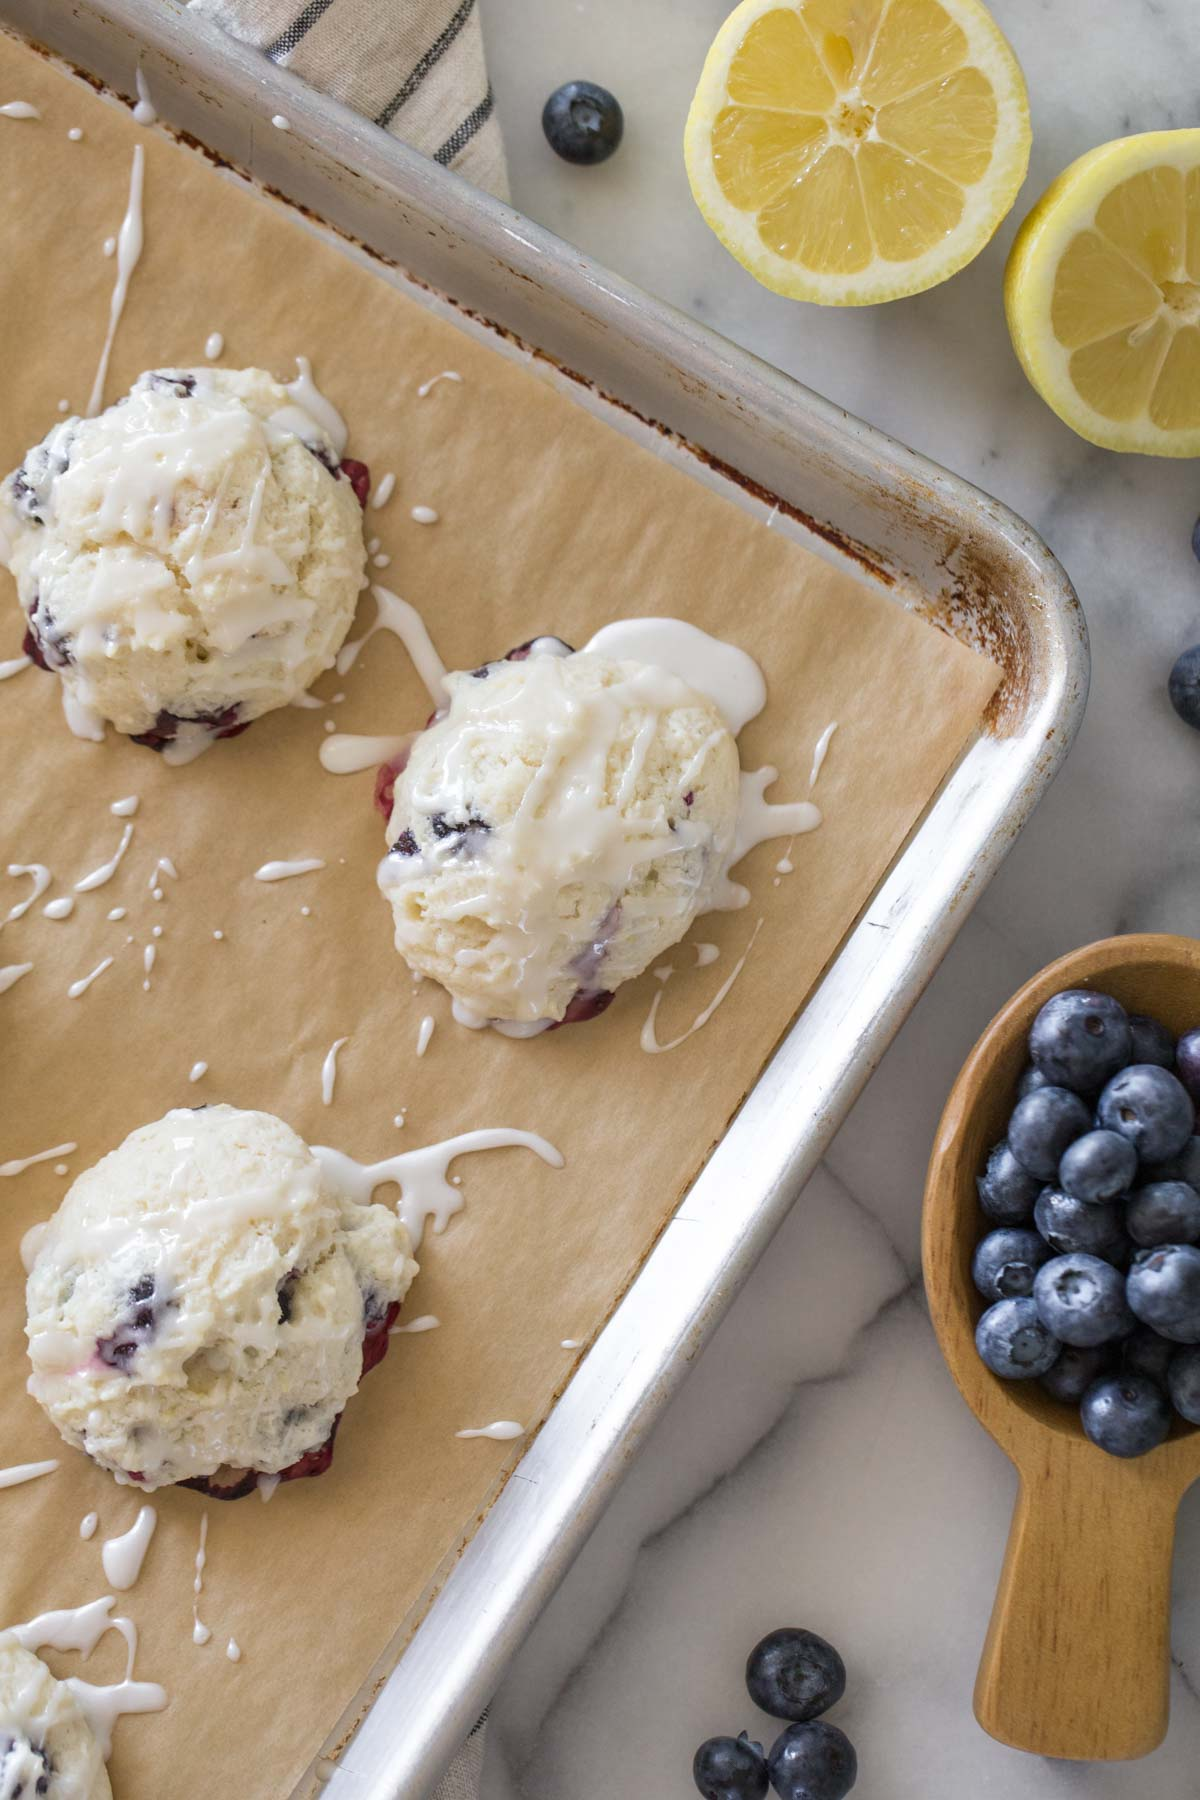 Glazed Lemon Blueberry Muffin Tops on a baking sheet with a grey background with fresh lemons and blueberries.